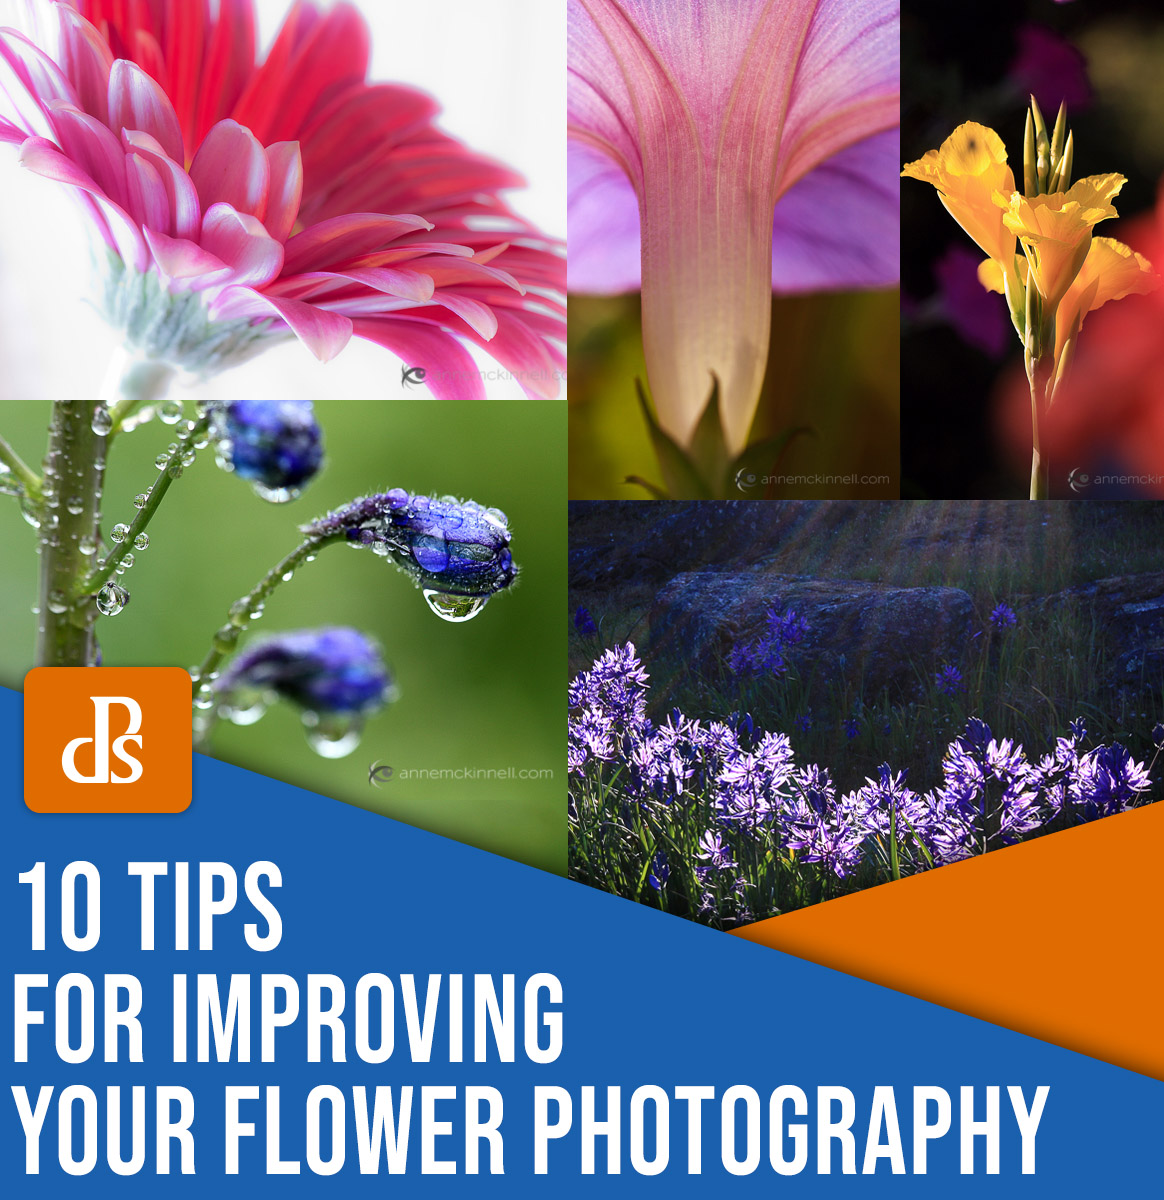 10 tips for improving your flower photography